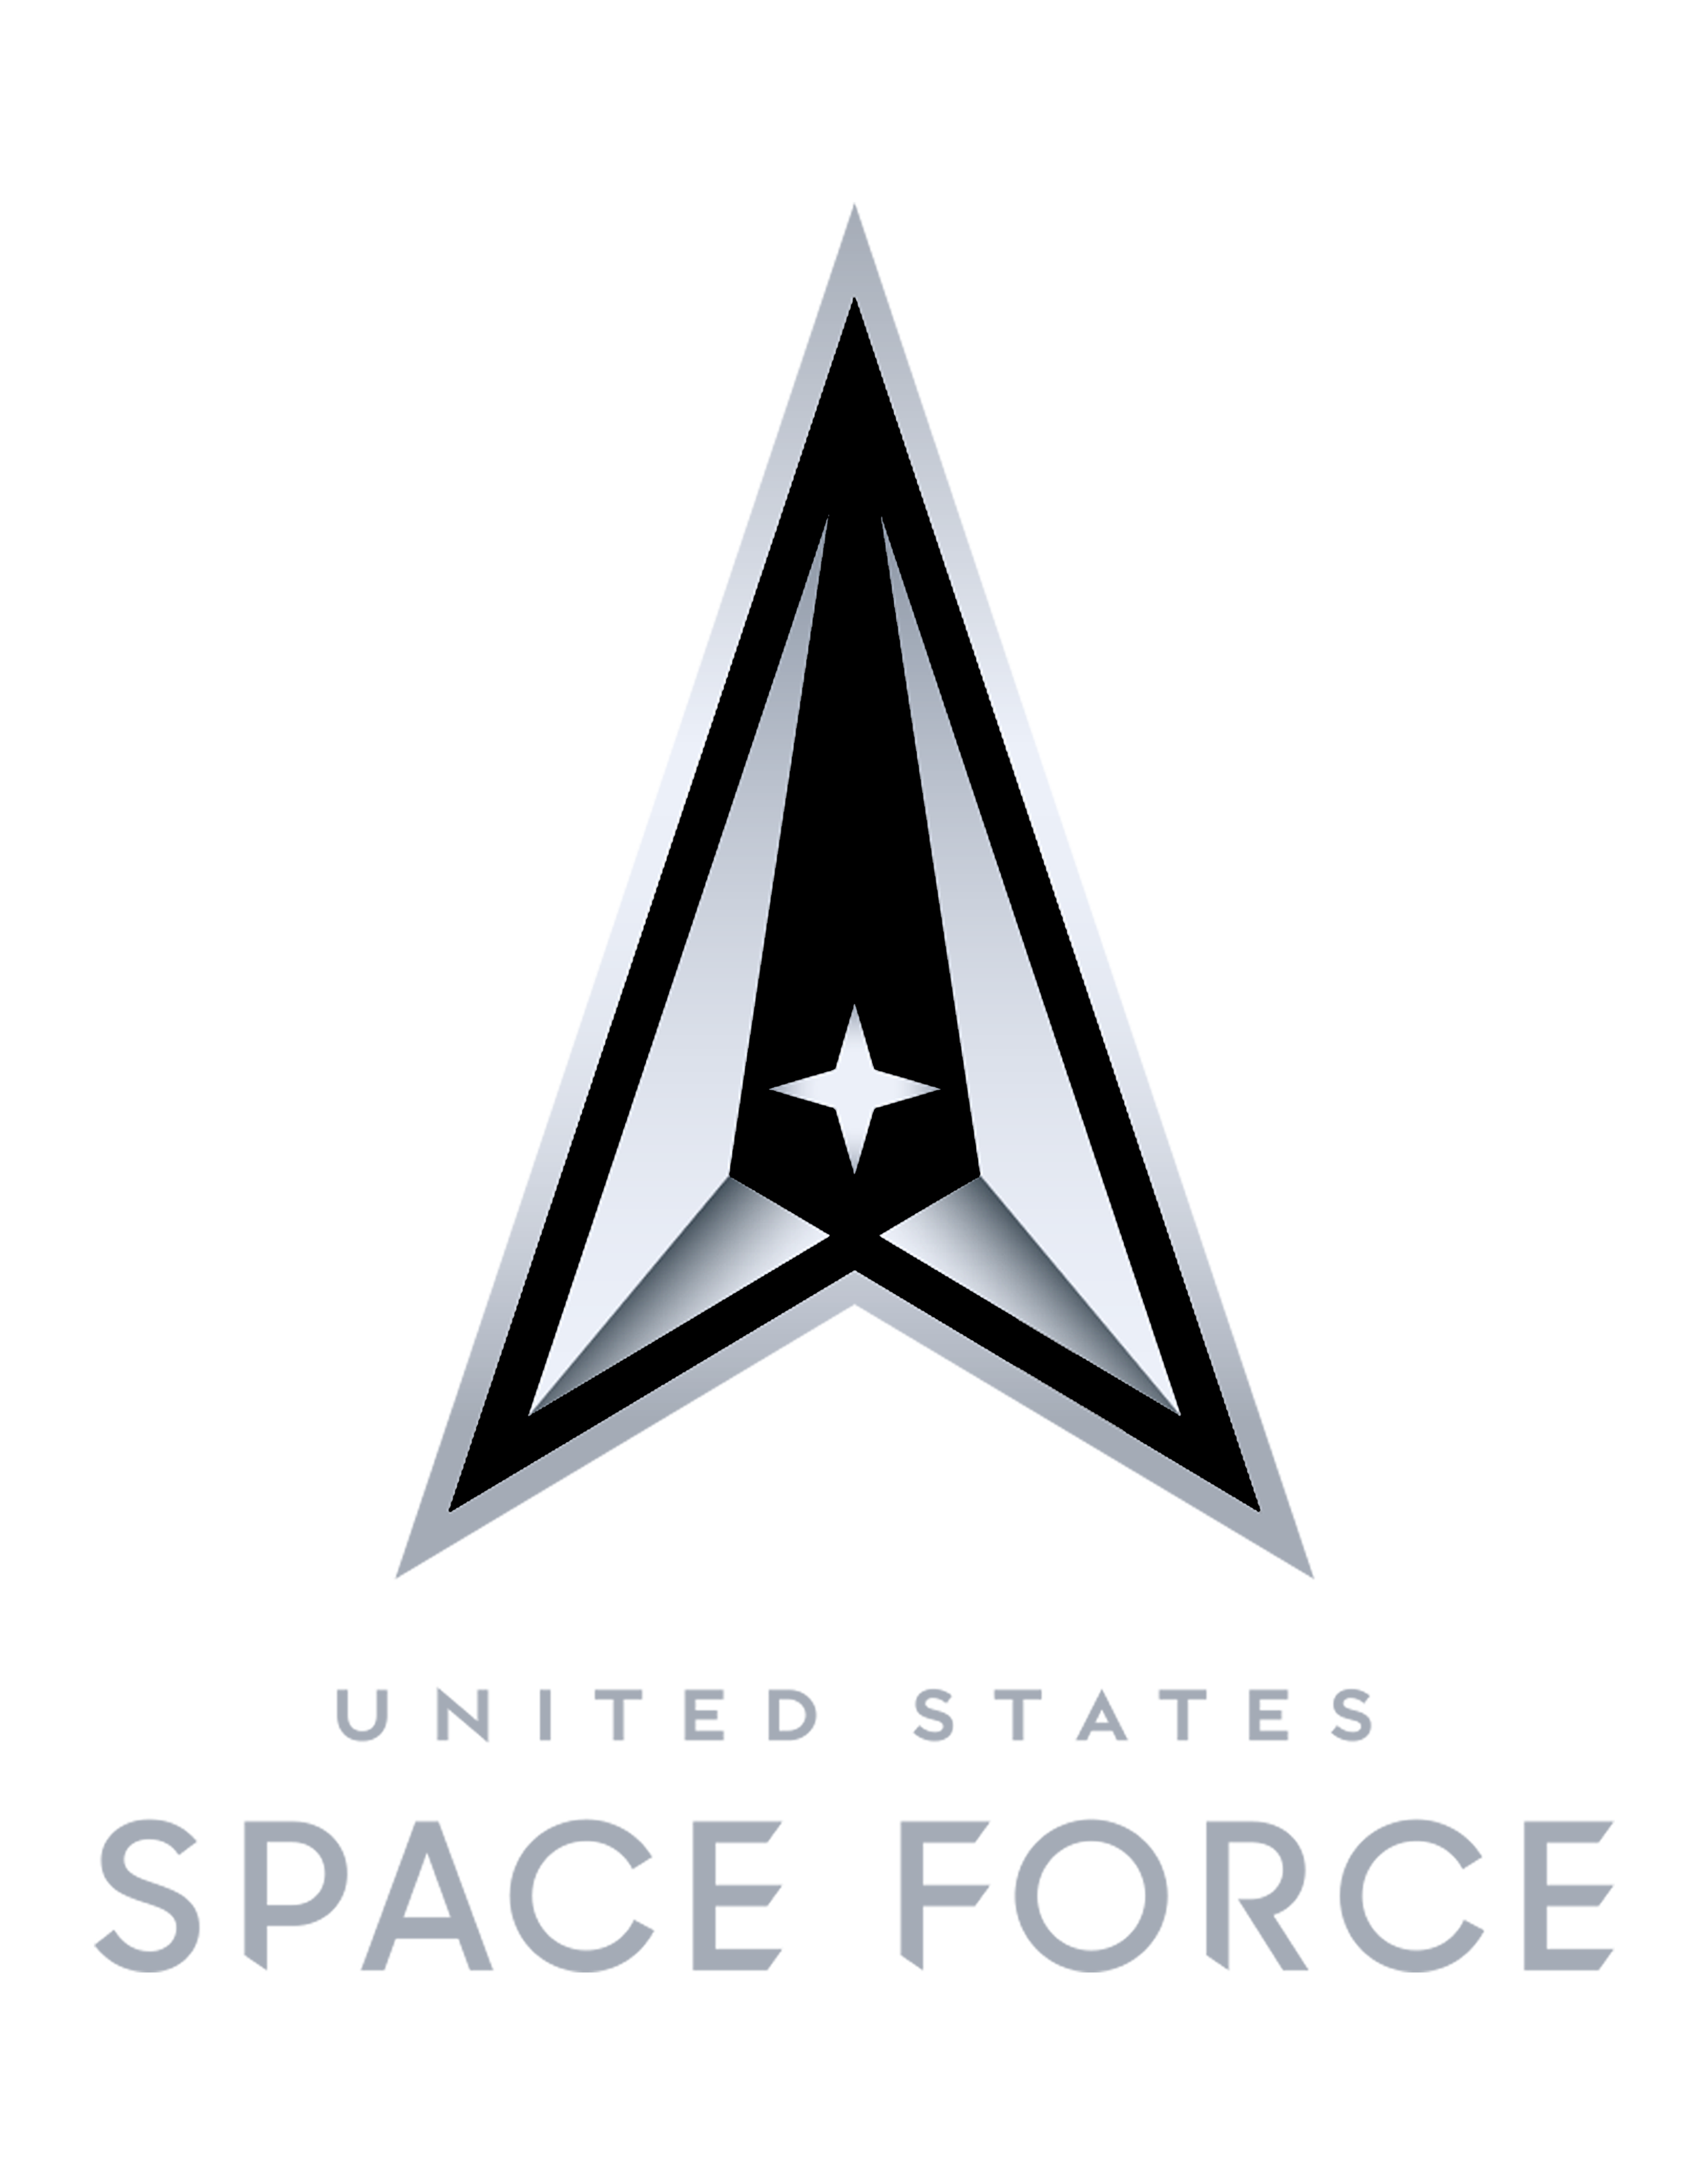 logo the united states space force png #41286